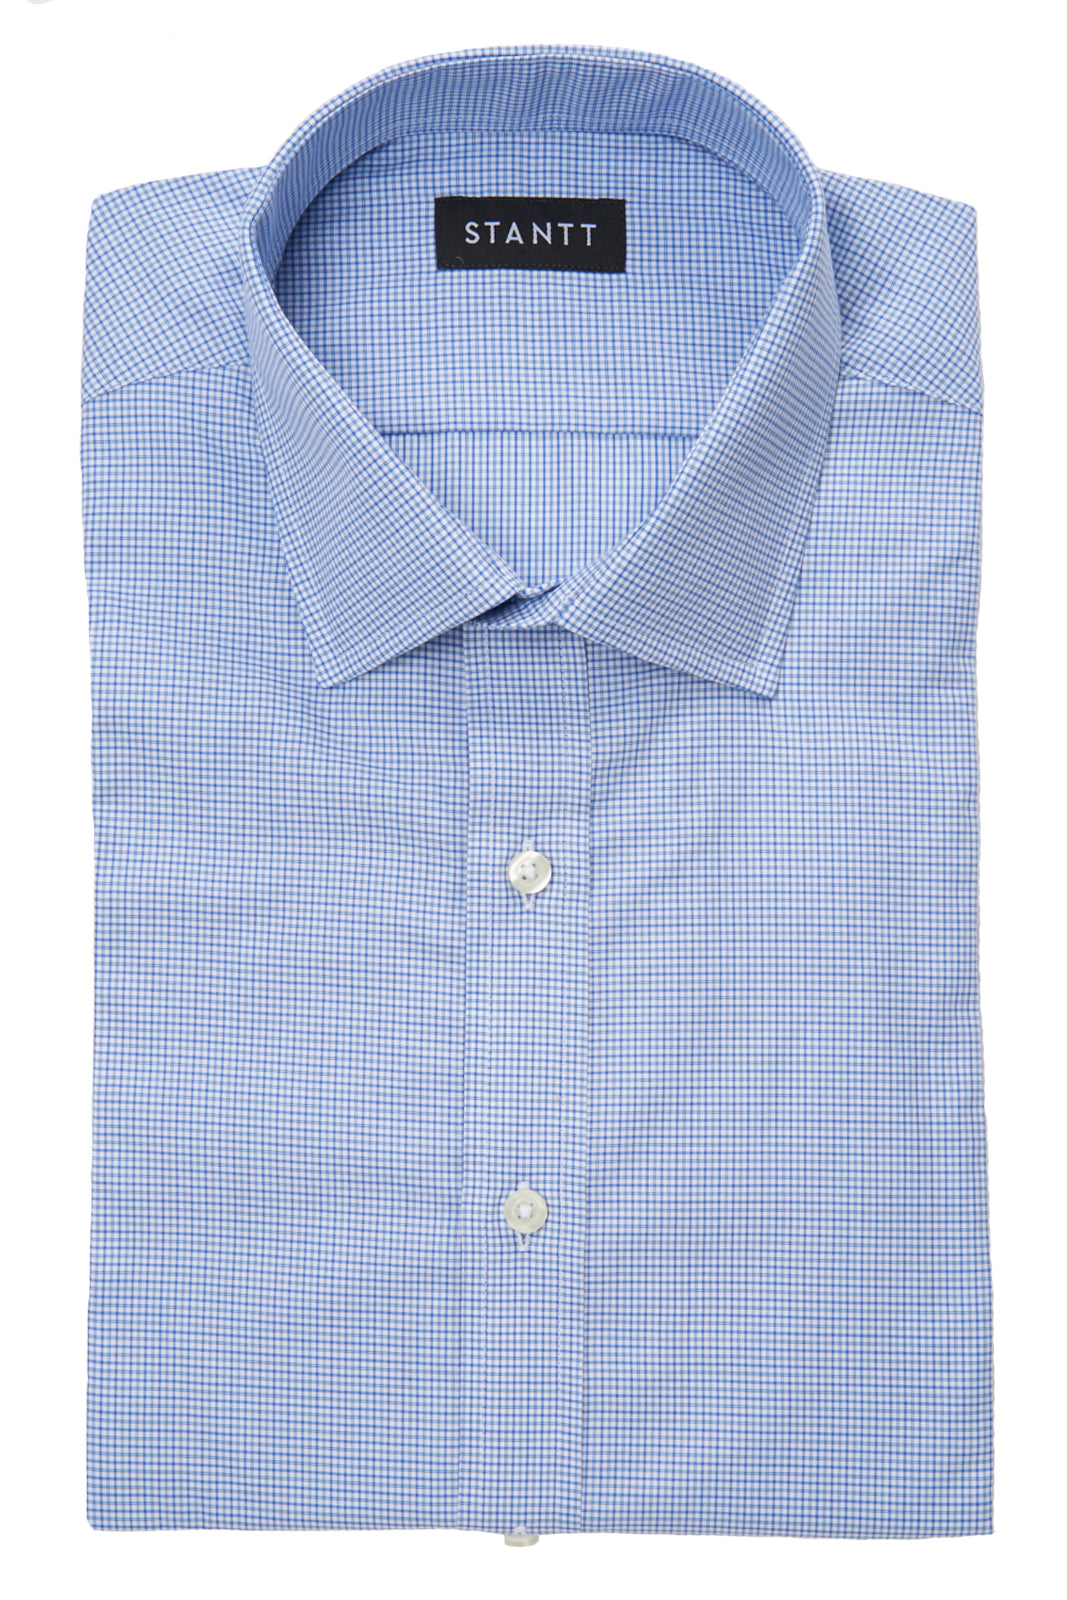 Mixed Blue Mini Tattersall: Semi-Spread Collar, Barrel Cuff